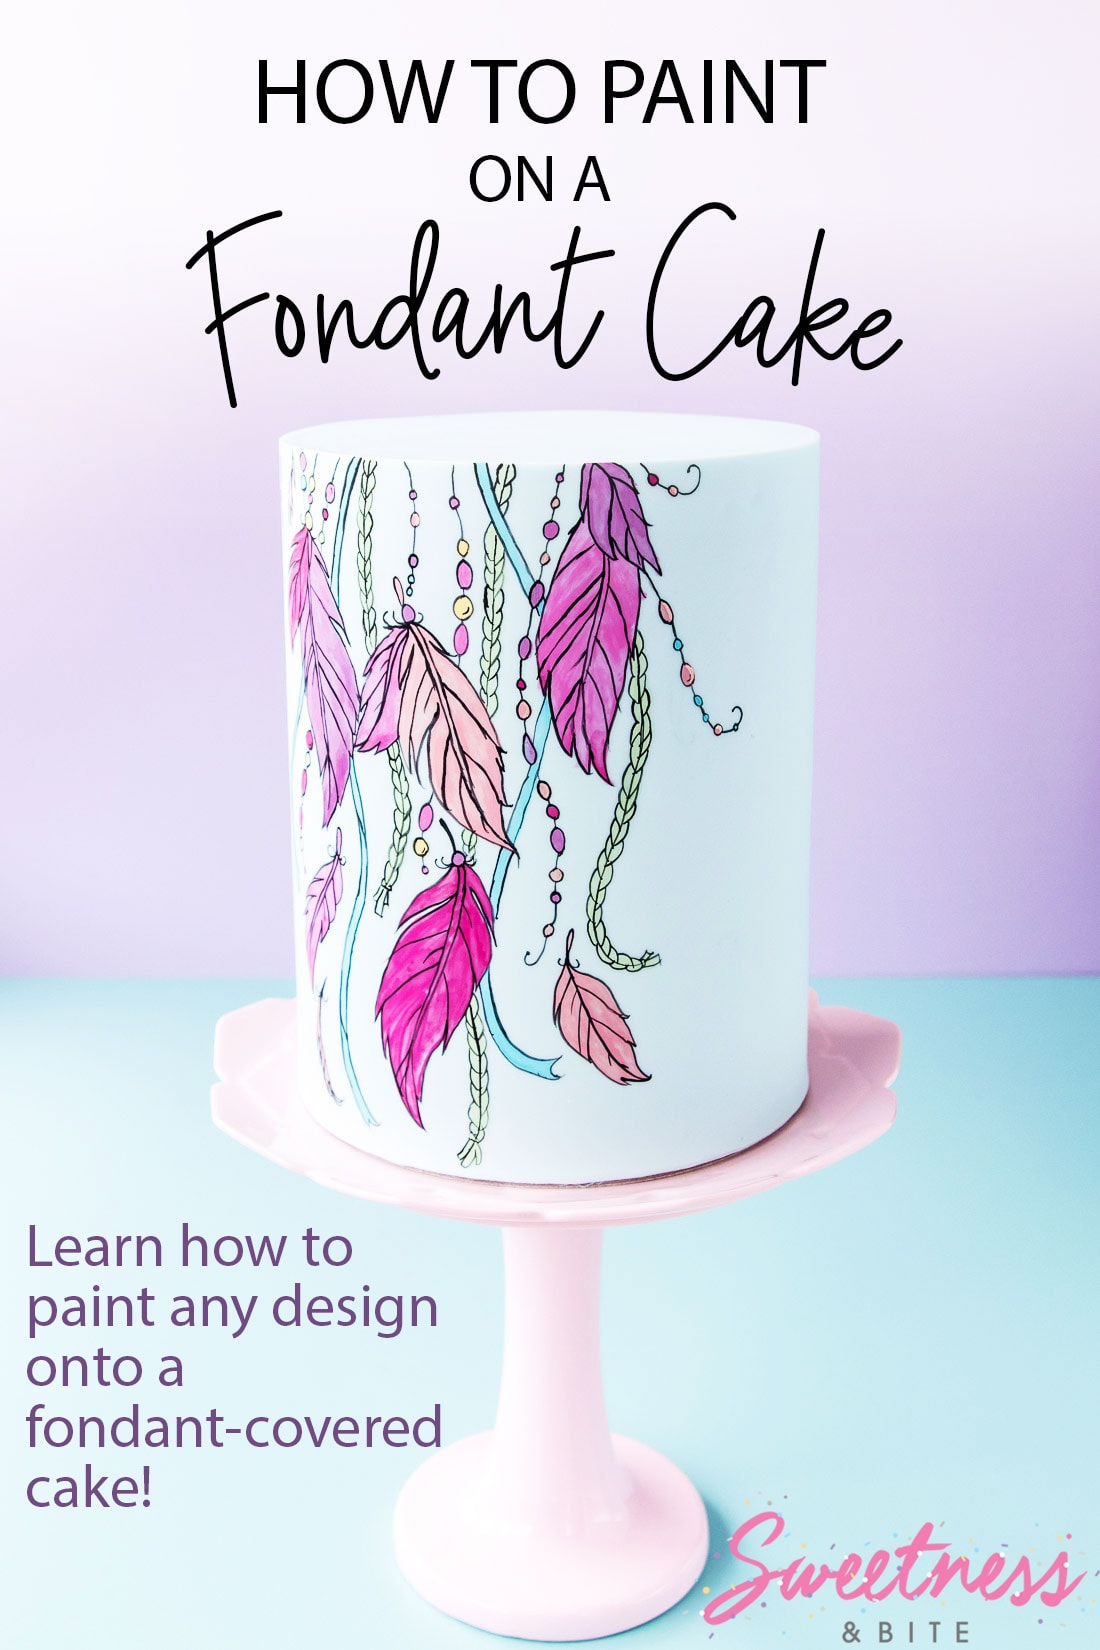 A pale blue fondant-covered cake with a bright dreamcatcher design painted on the front. Text overlay reads: